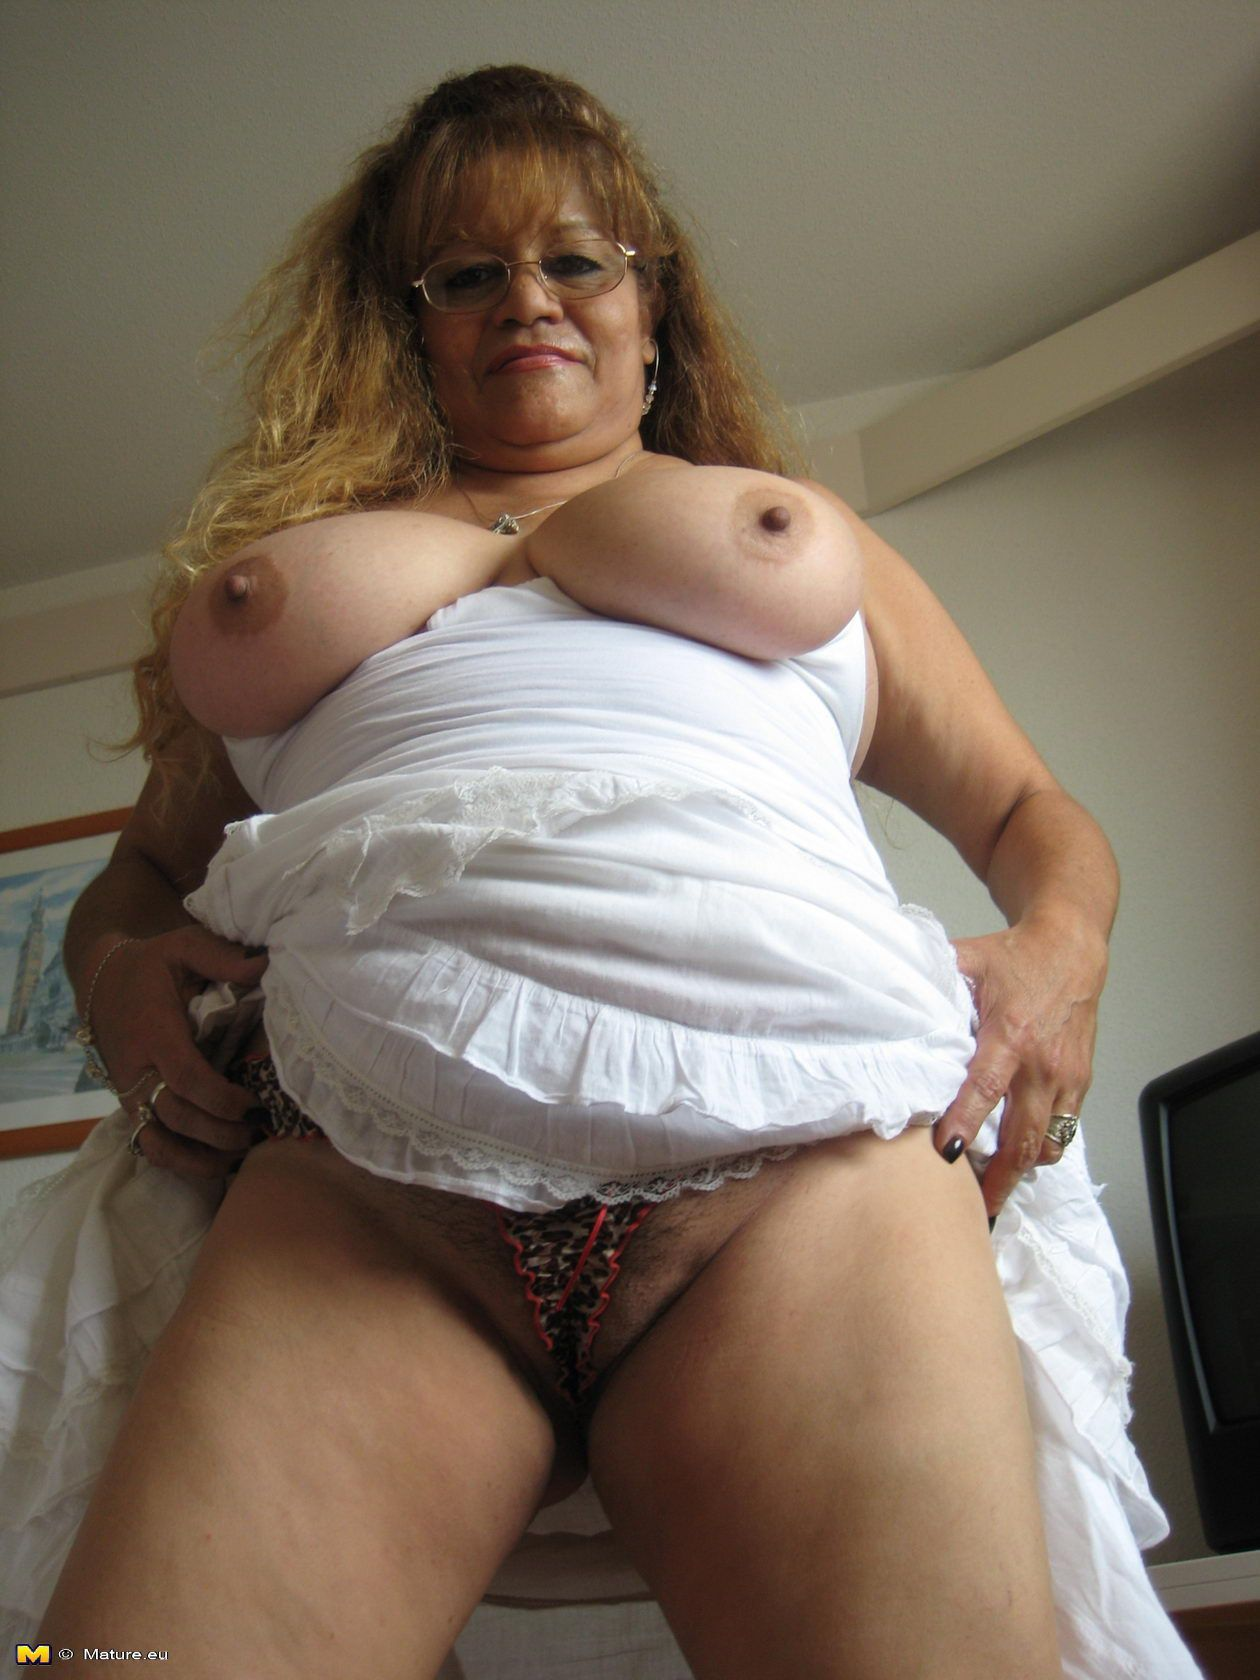 The besty mature video site